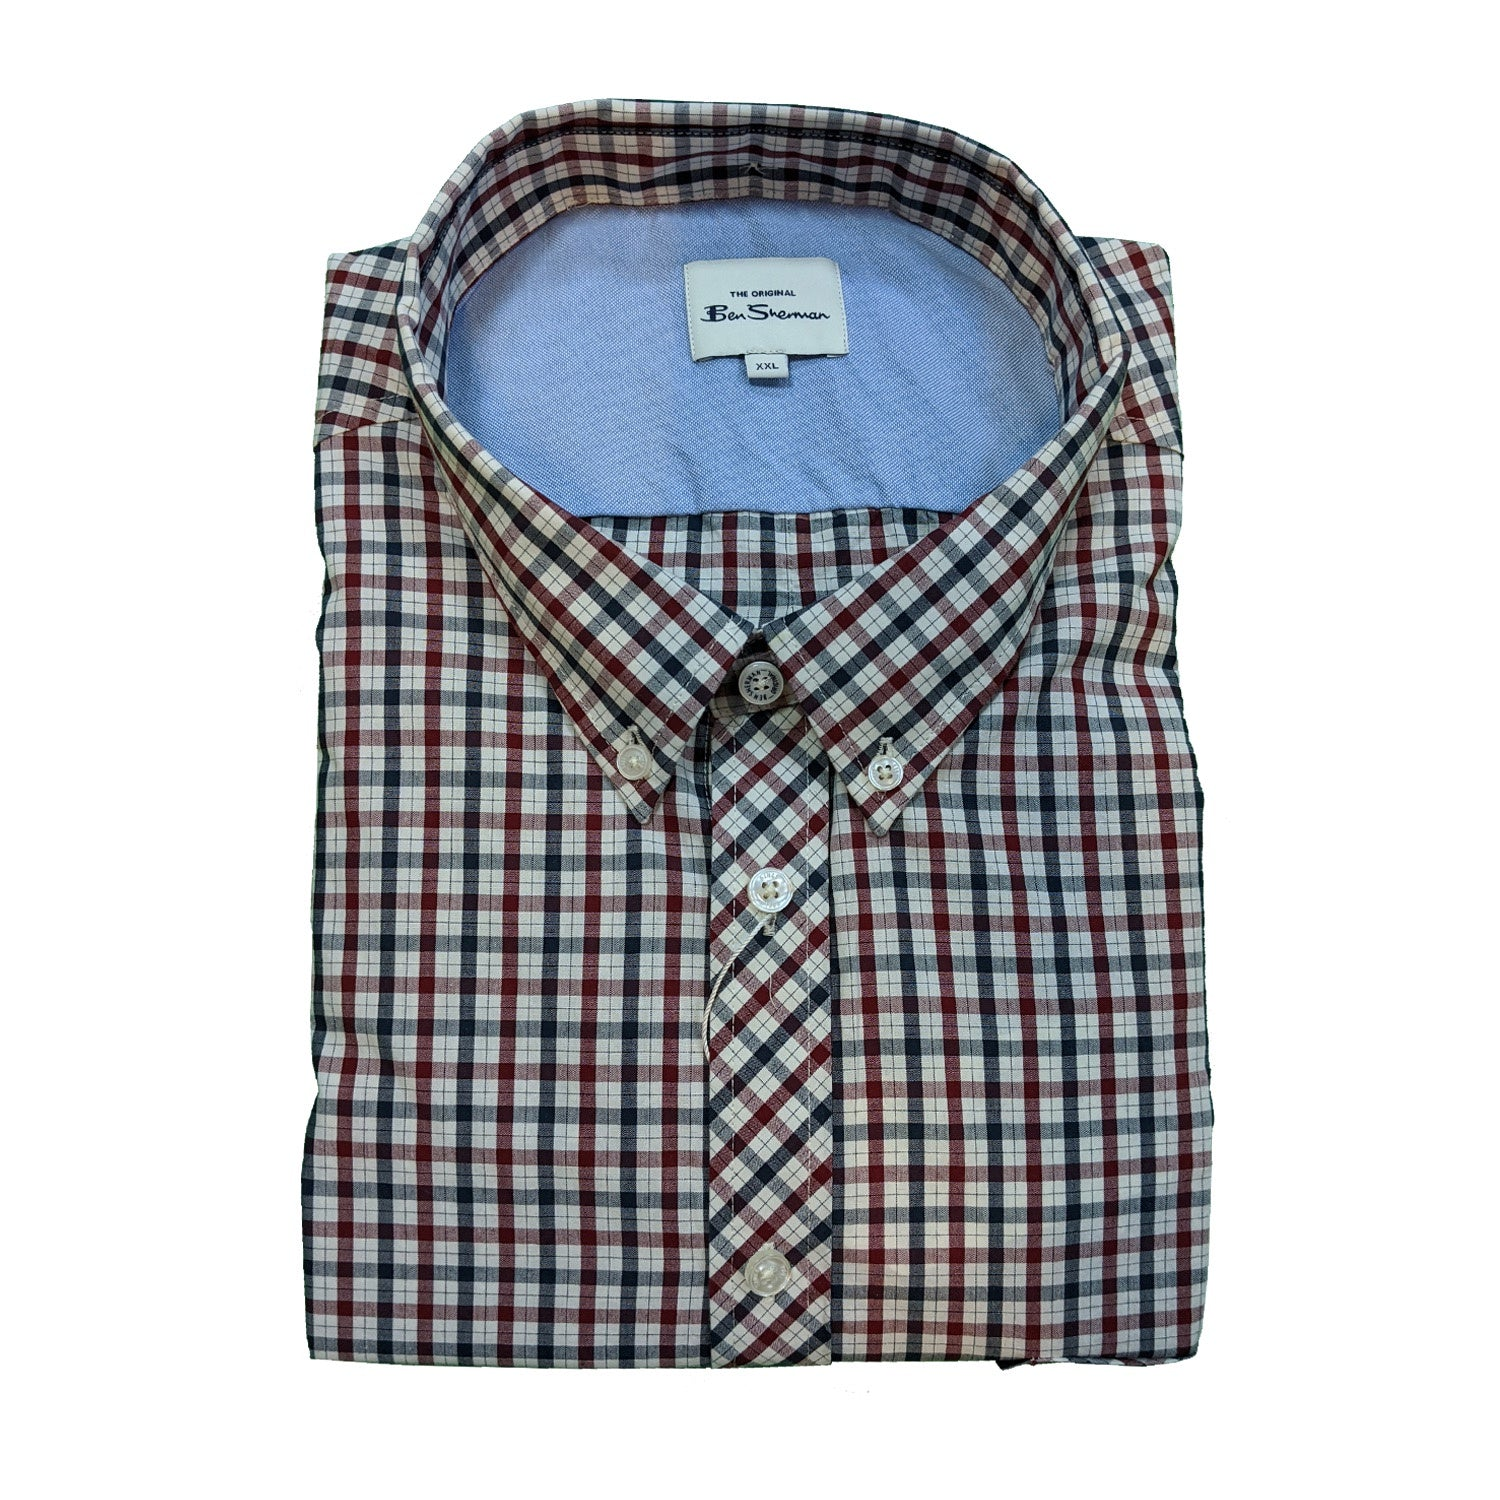 Ben Sherman S/S Shirt - 0059144IL - Red 1